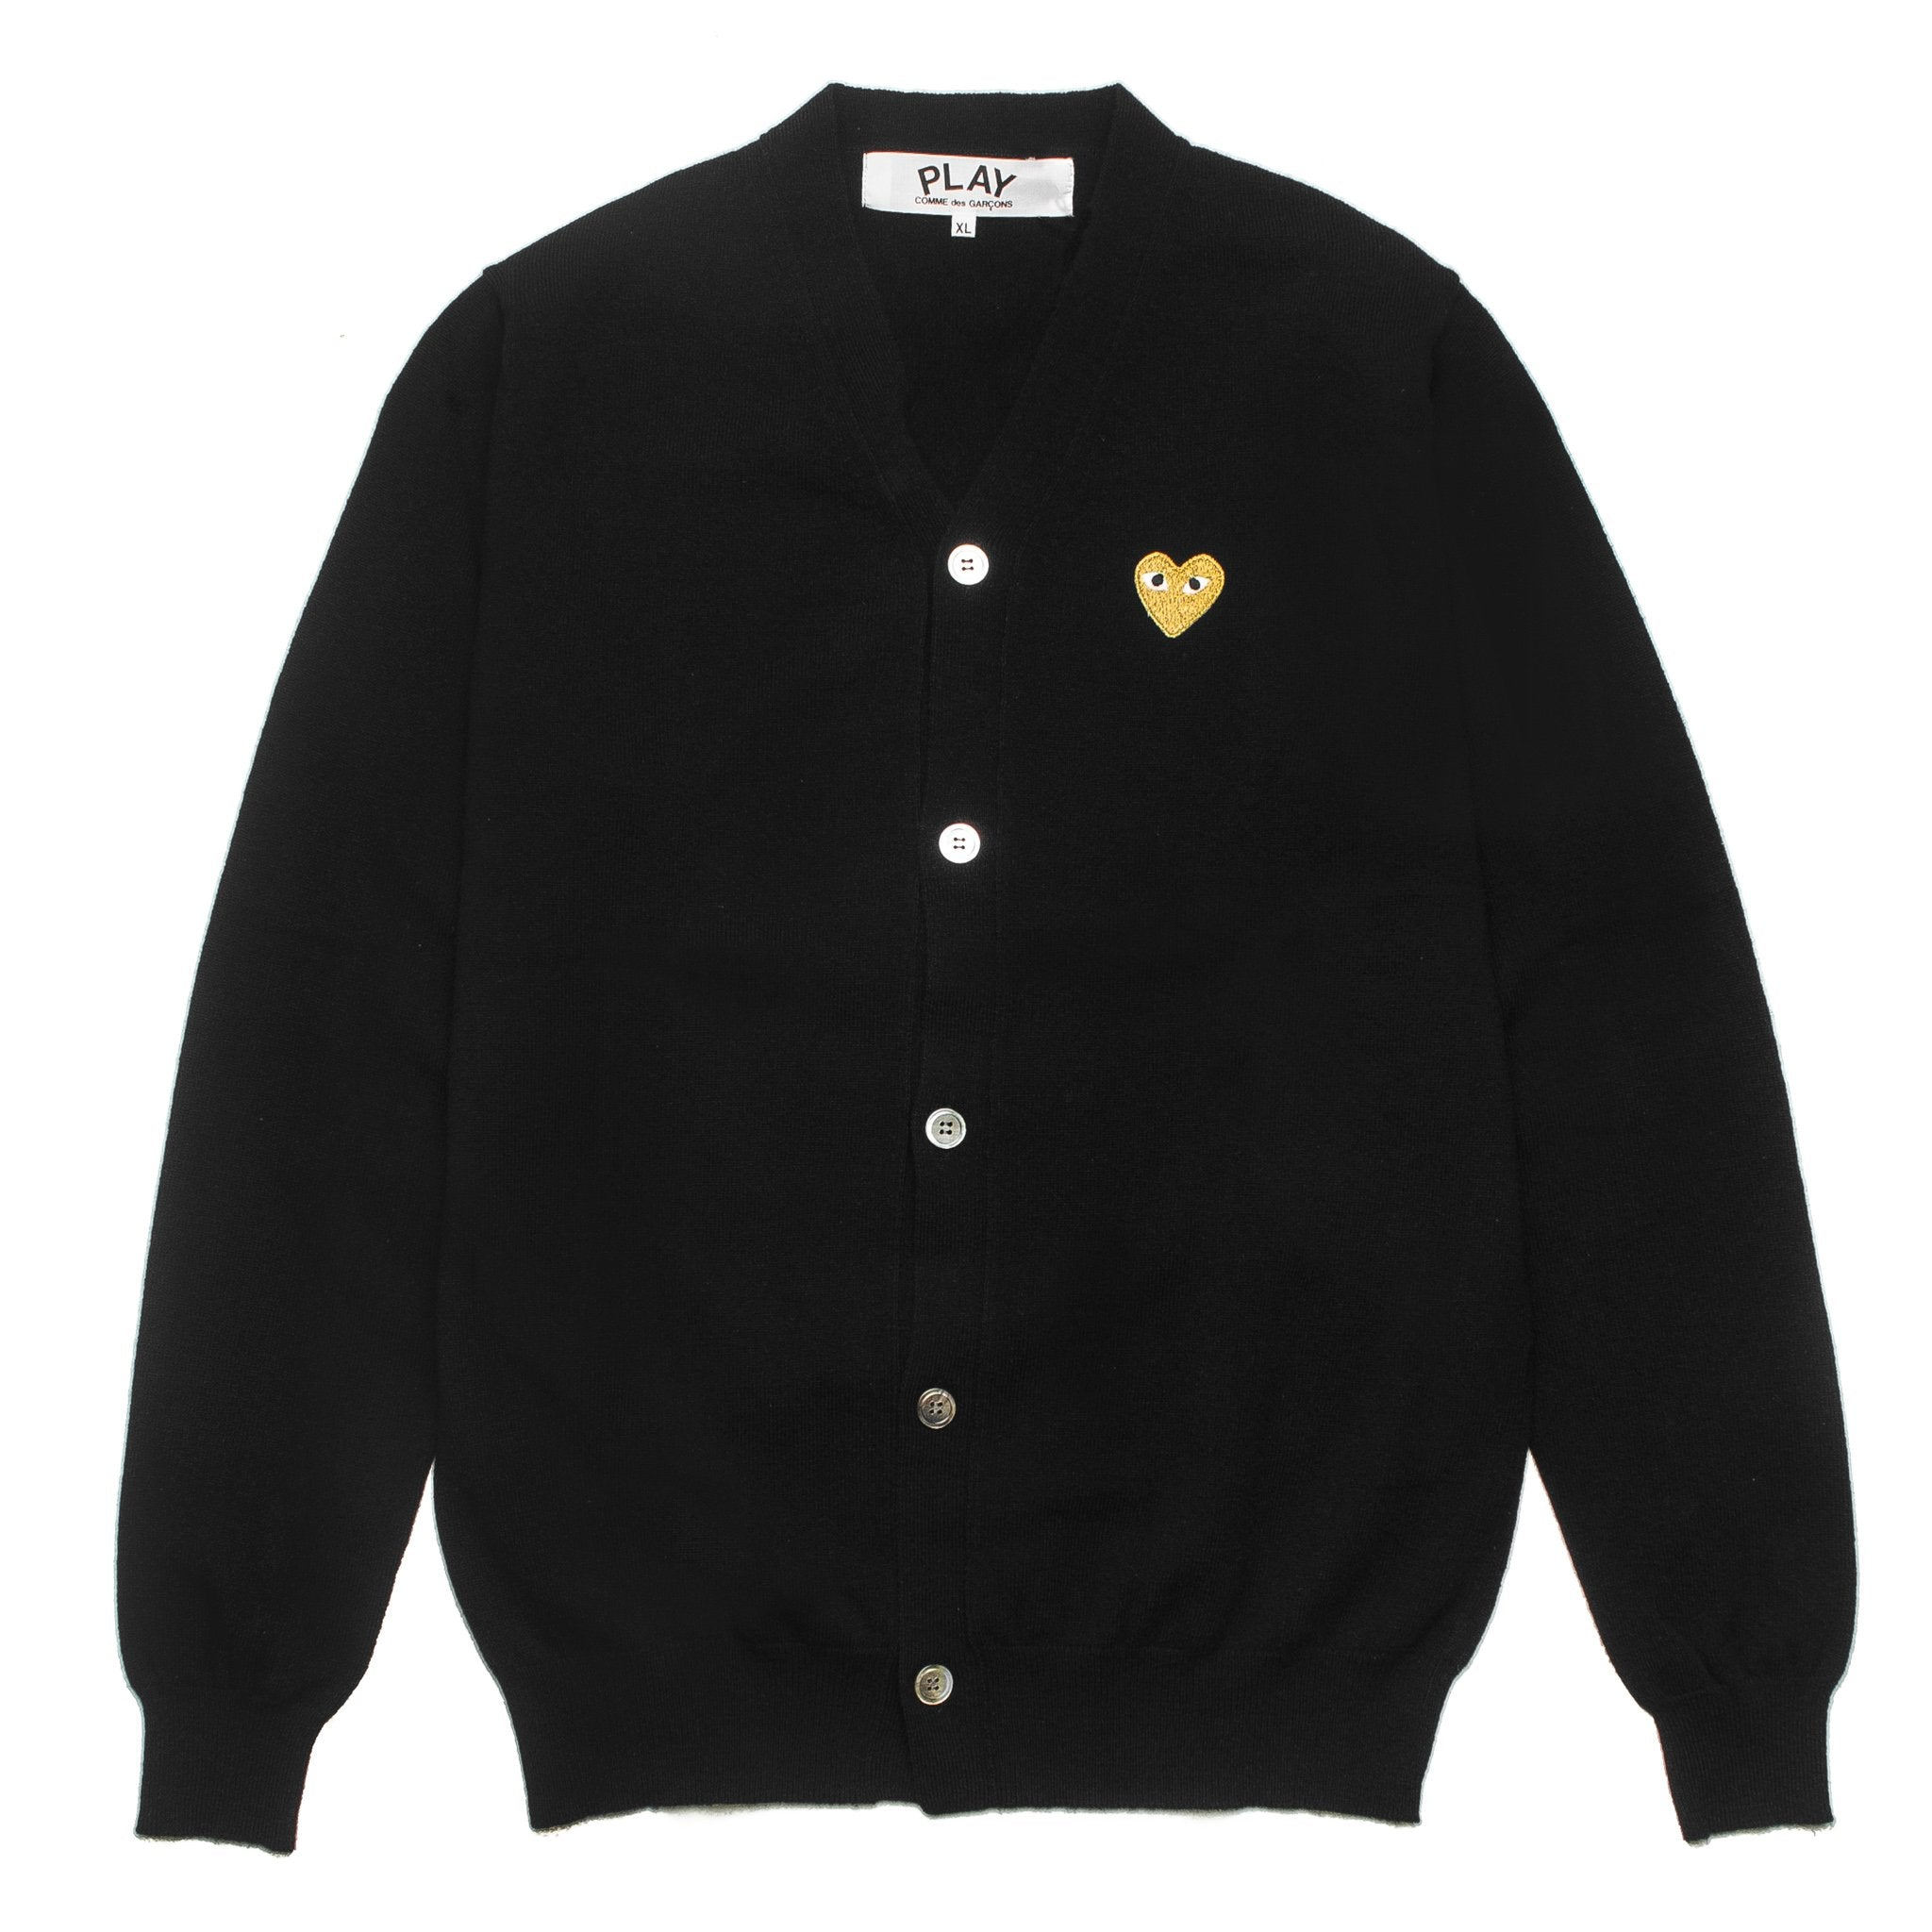 Gold Heart Cardigan AZ-N050-051-1 Black